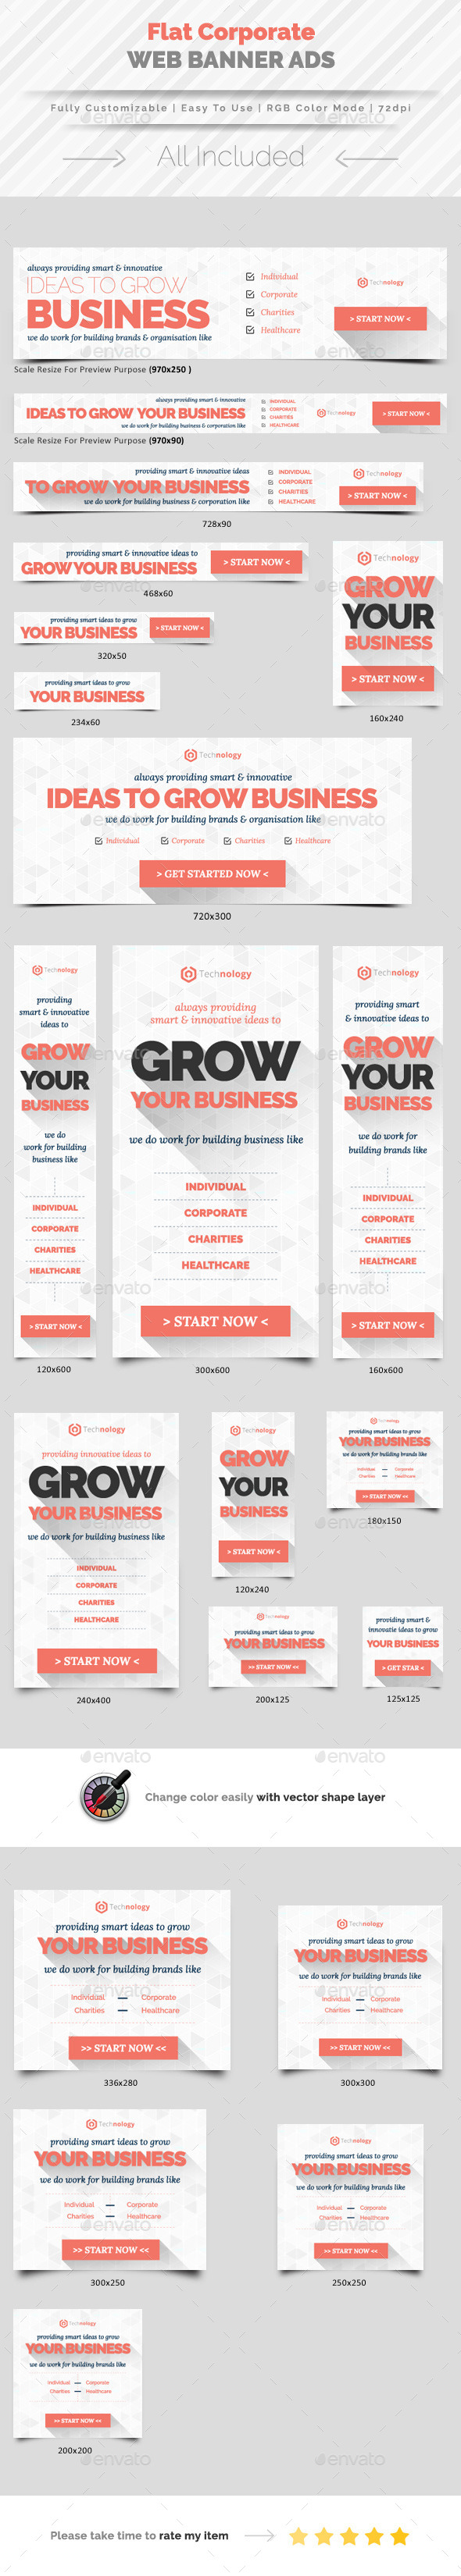 Flat Corporate Web Banner Ads - Banners & Ads Web Elements